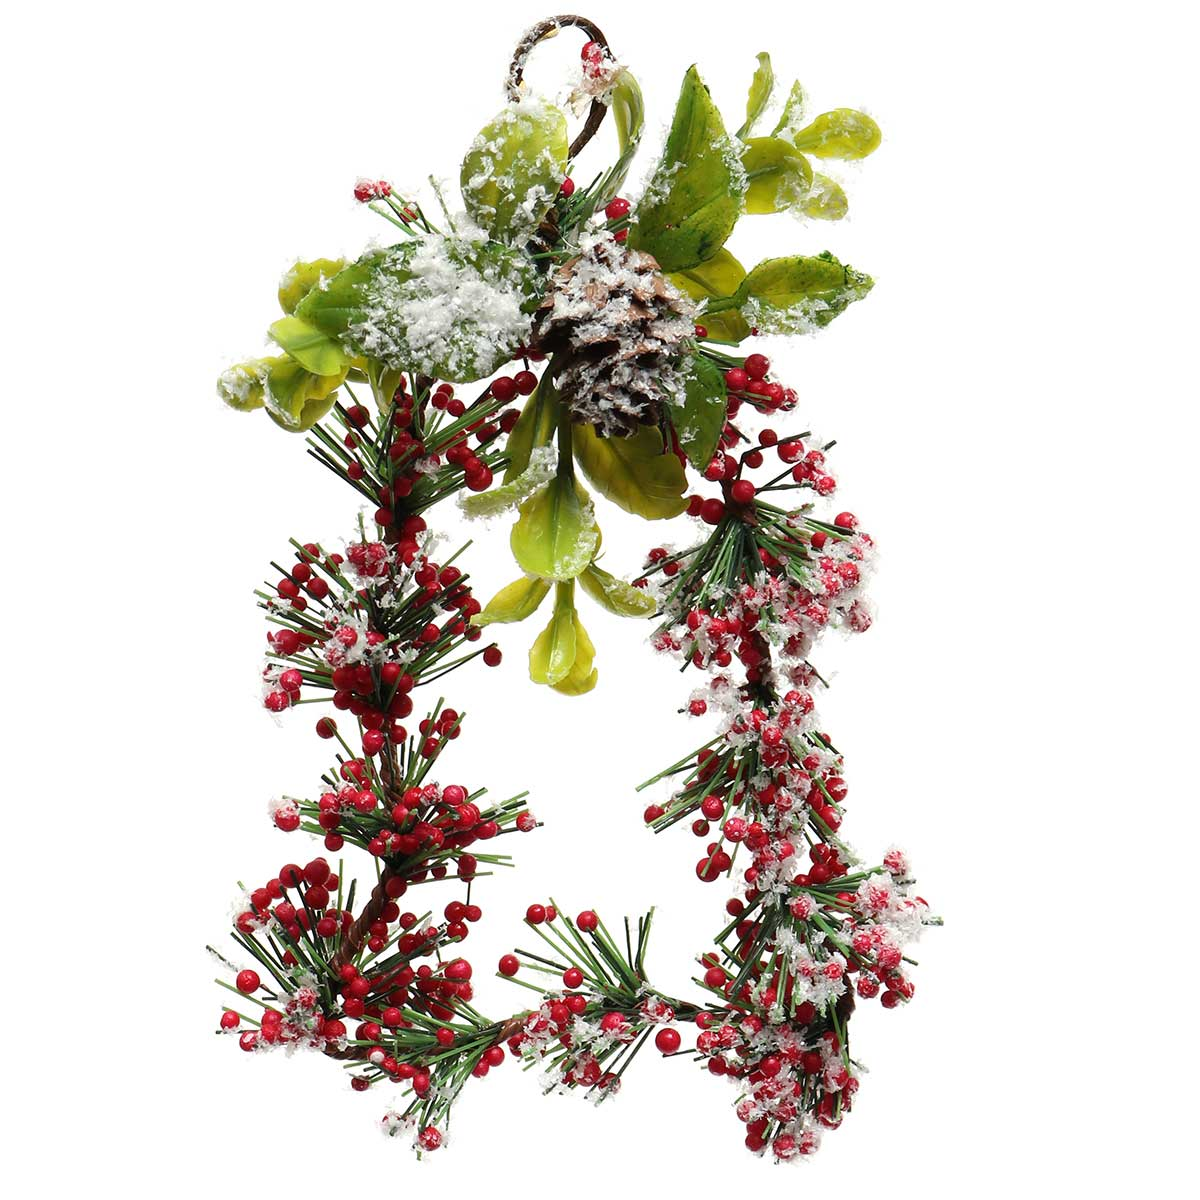 WINTER RED BERRY BELL-SHAPED WREATH ORNAMENT